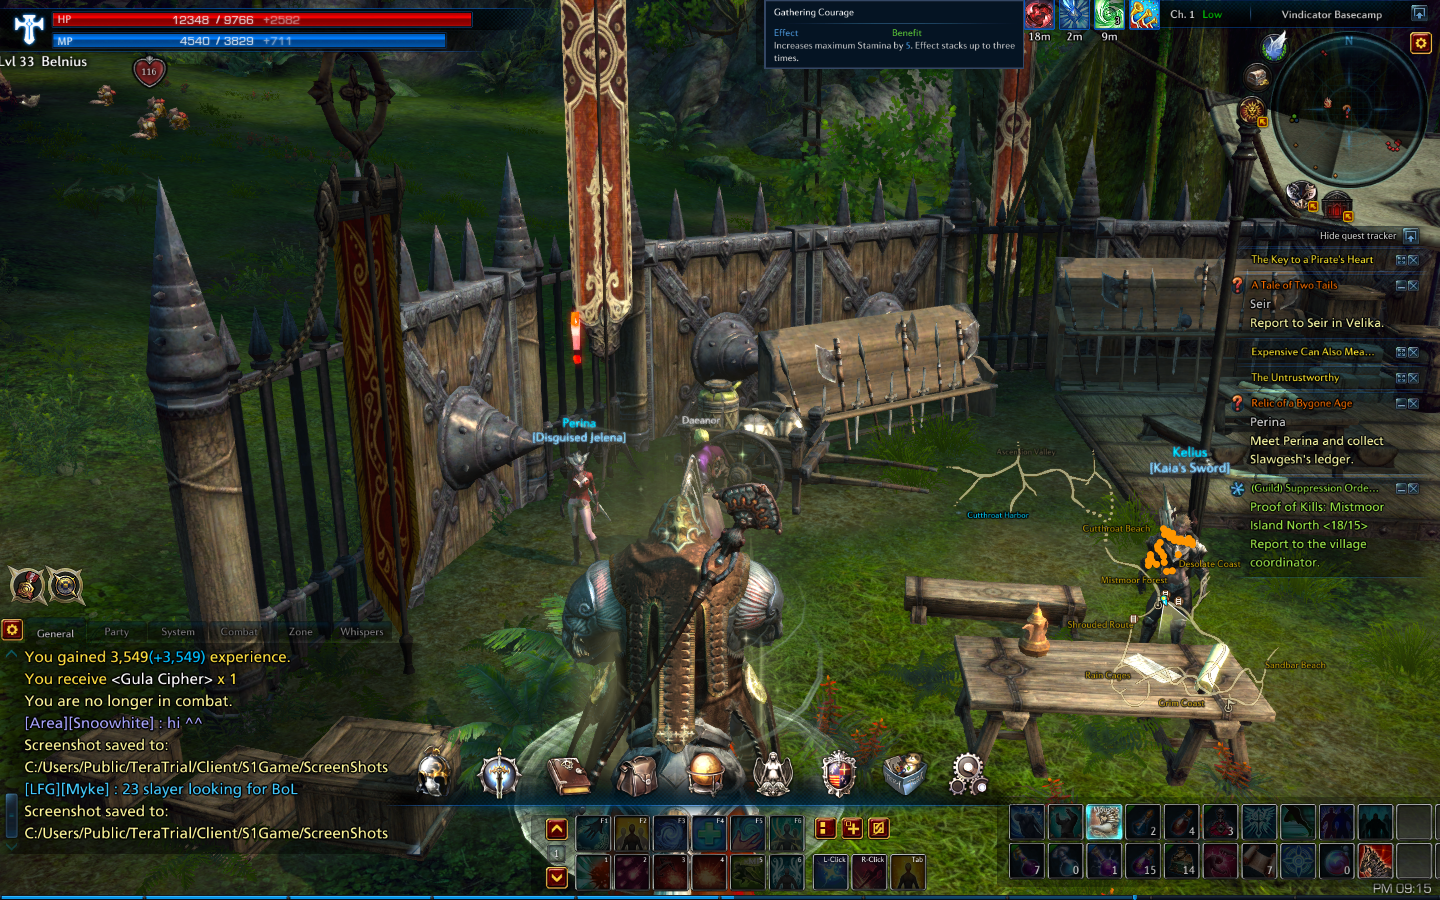 tera screenshot - Google Search | Game screenshot_01 | Google